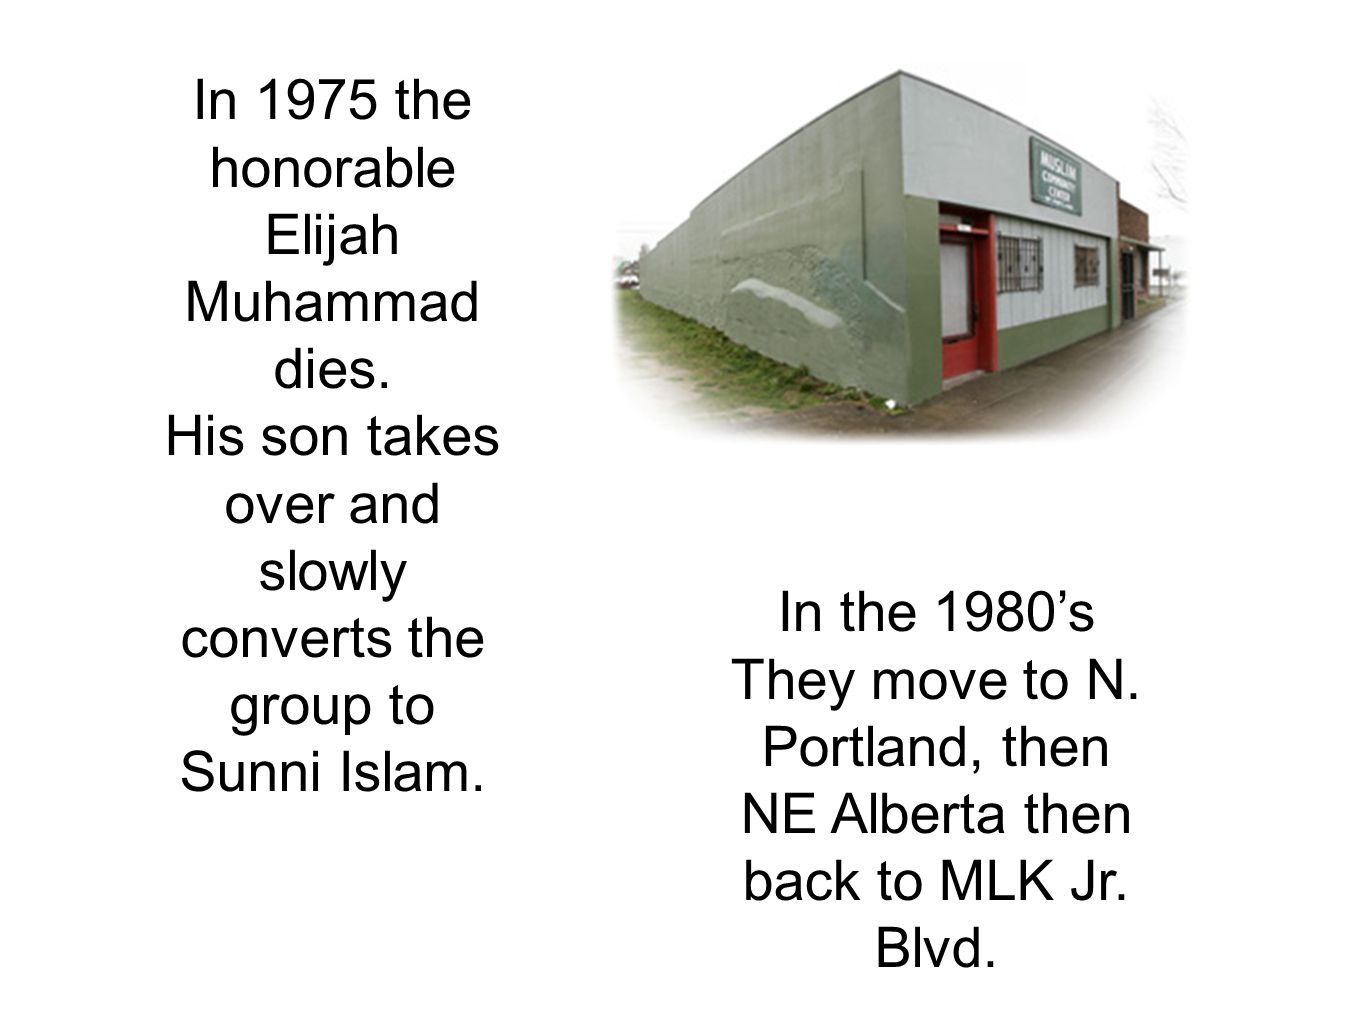 In 1975 the honorable Elijah Muhammad dies. His son takes over and slowly converts the group to Sunni Islam. In the 1980's They move to N. Portland, t